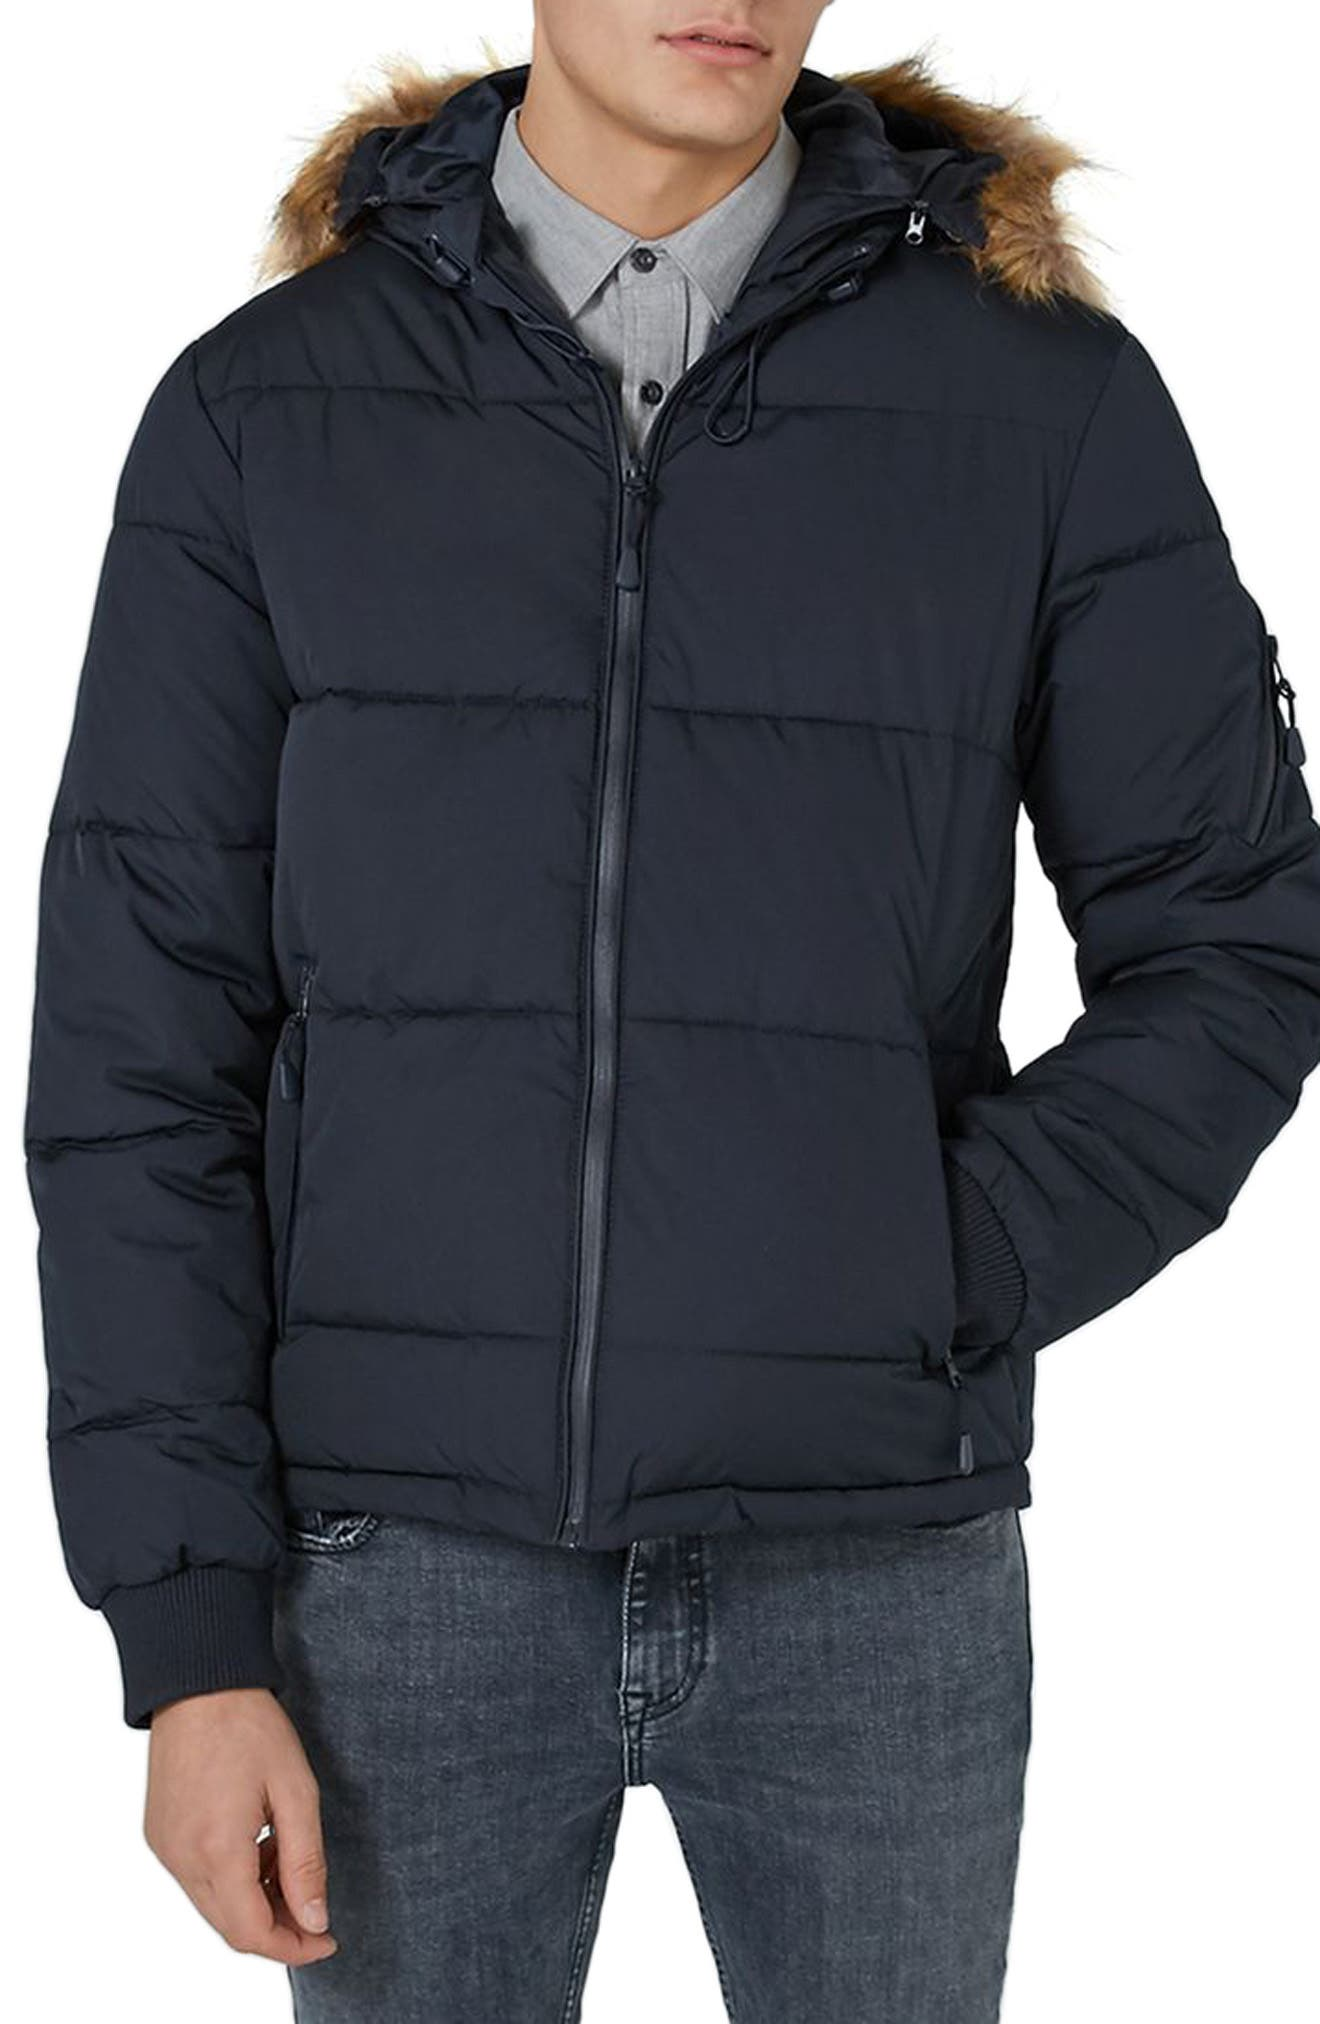 Maguire Hooded Puffer Coat with Faux Fur Trim,                         Main,                         color, Navy Blue